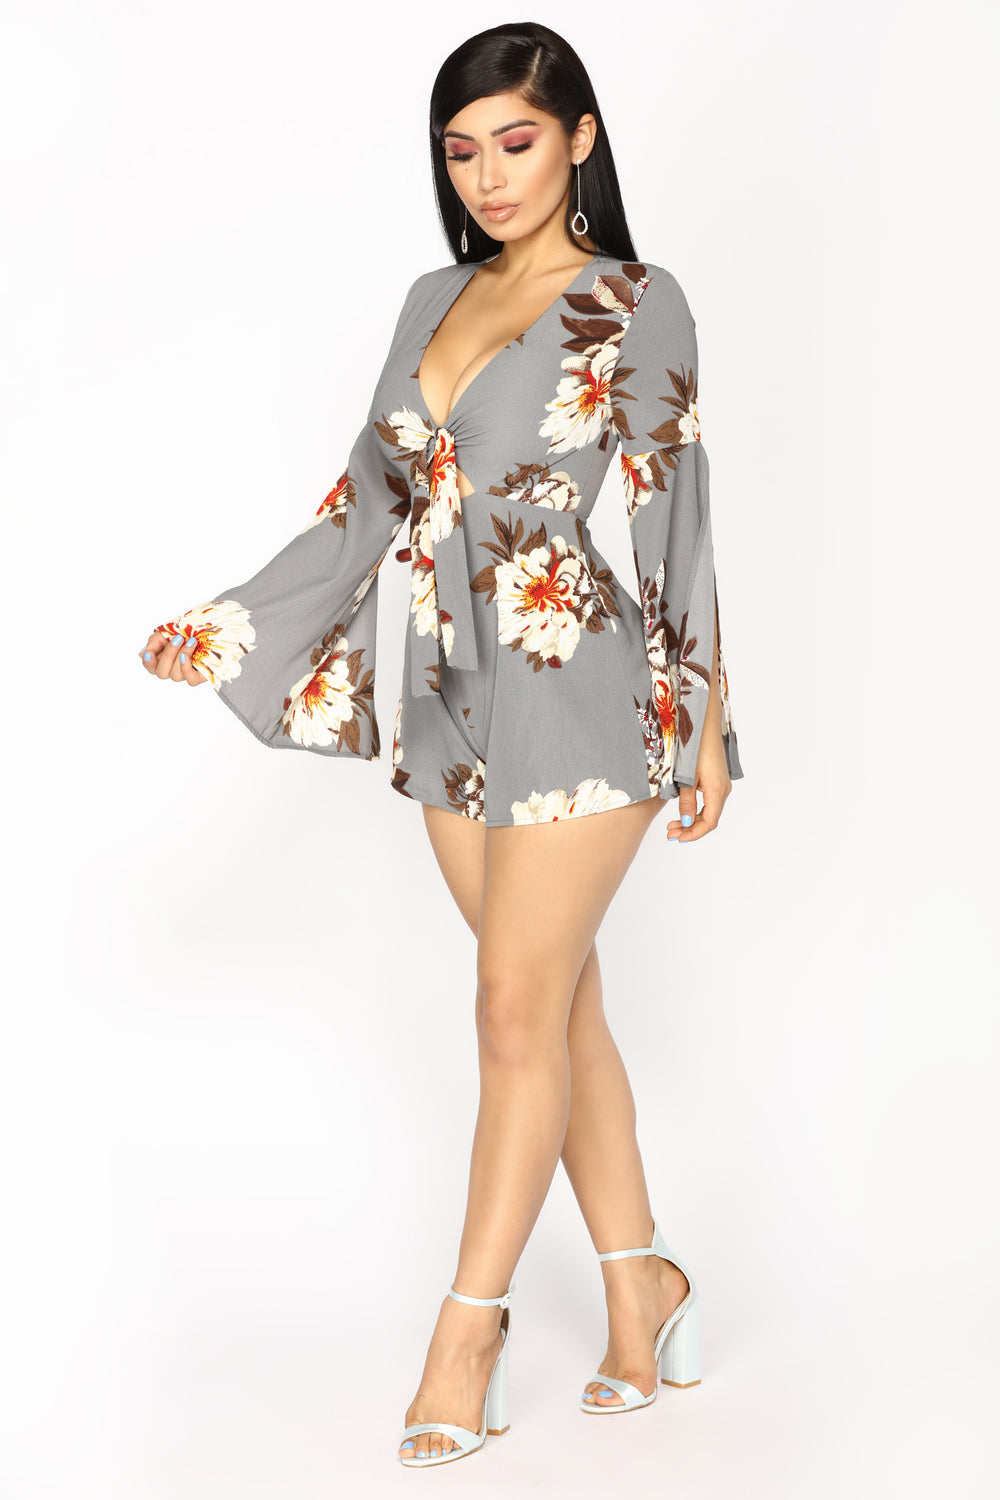 Walks Of Life Floral Romper - Grey Floral